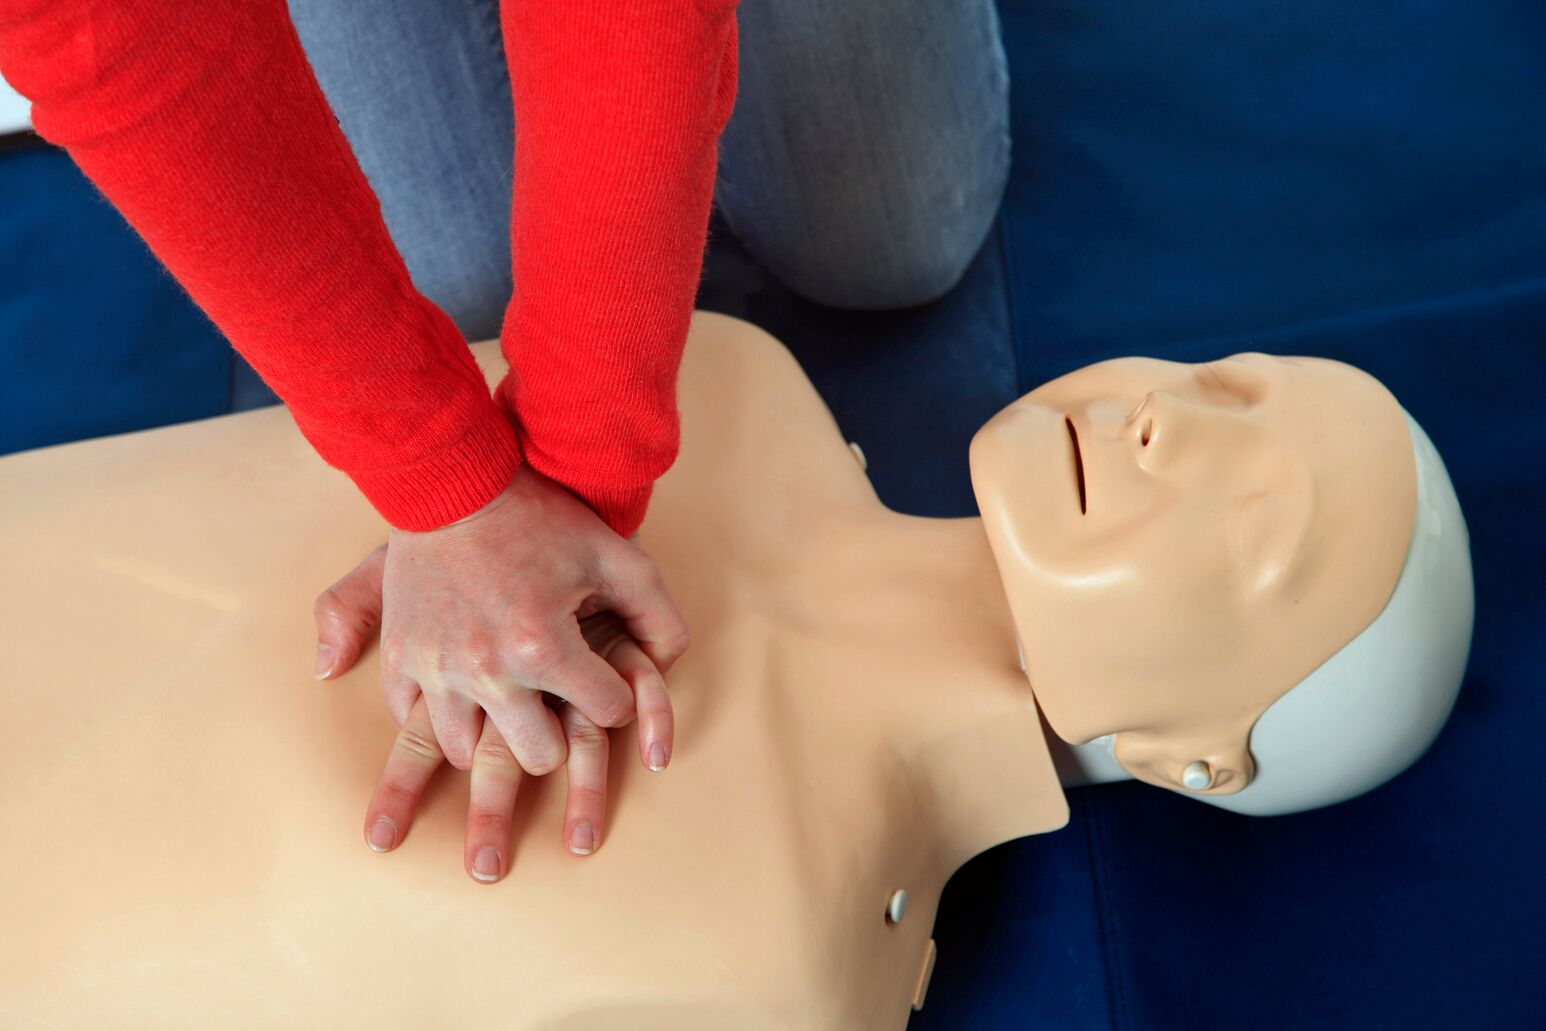 A persons trains on a CPR dummy